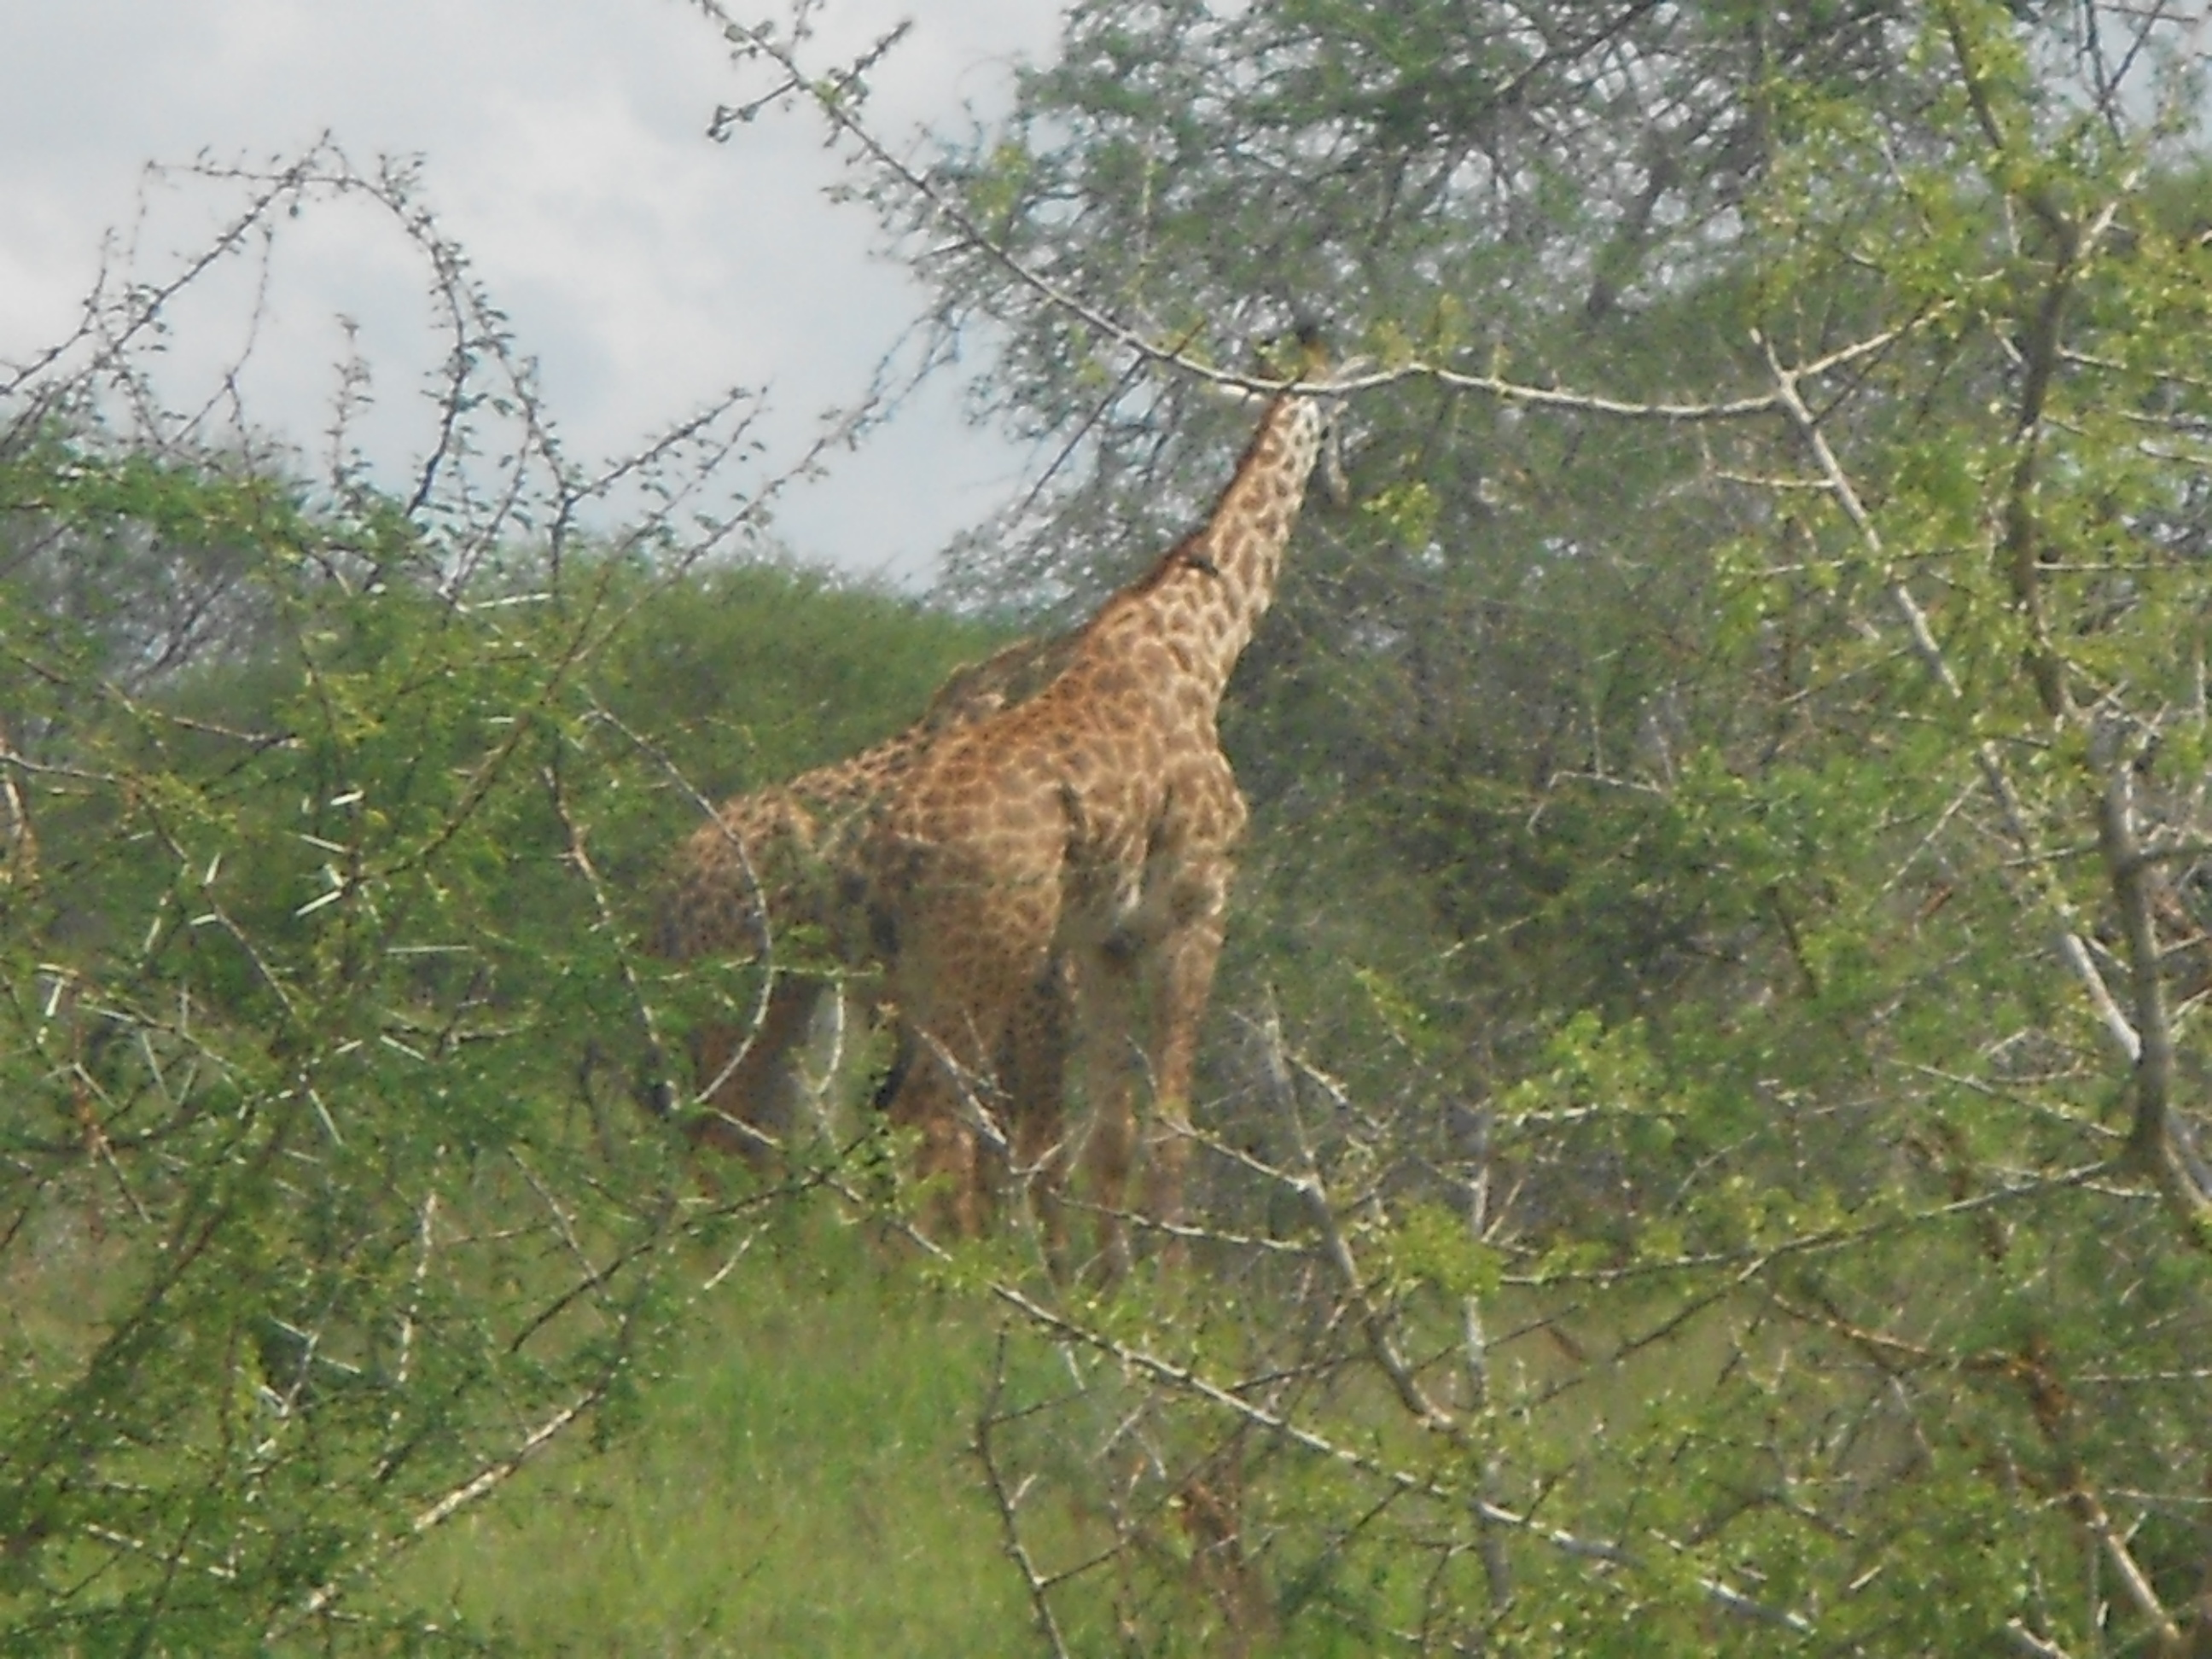 Giraffe in Lumo Wildlife Park in Kenya